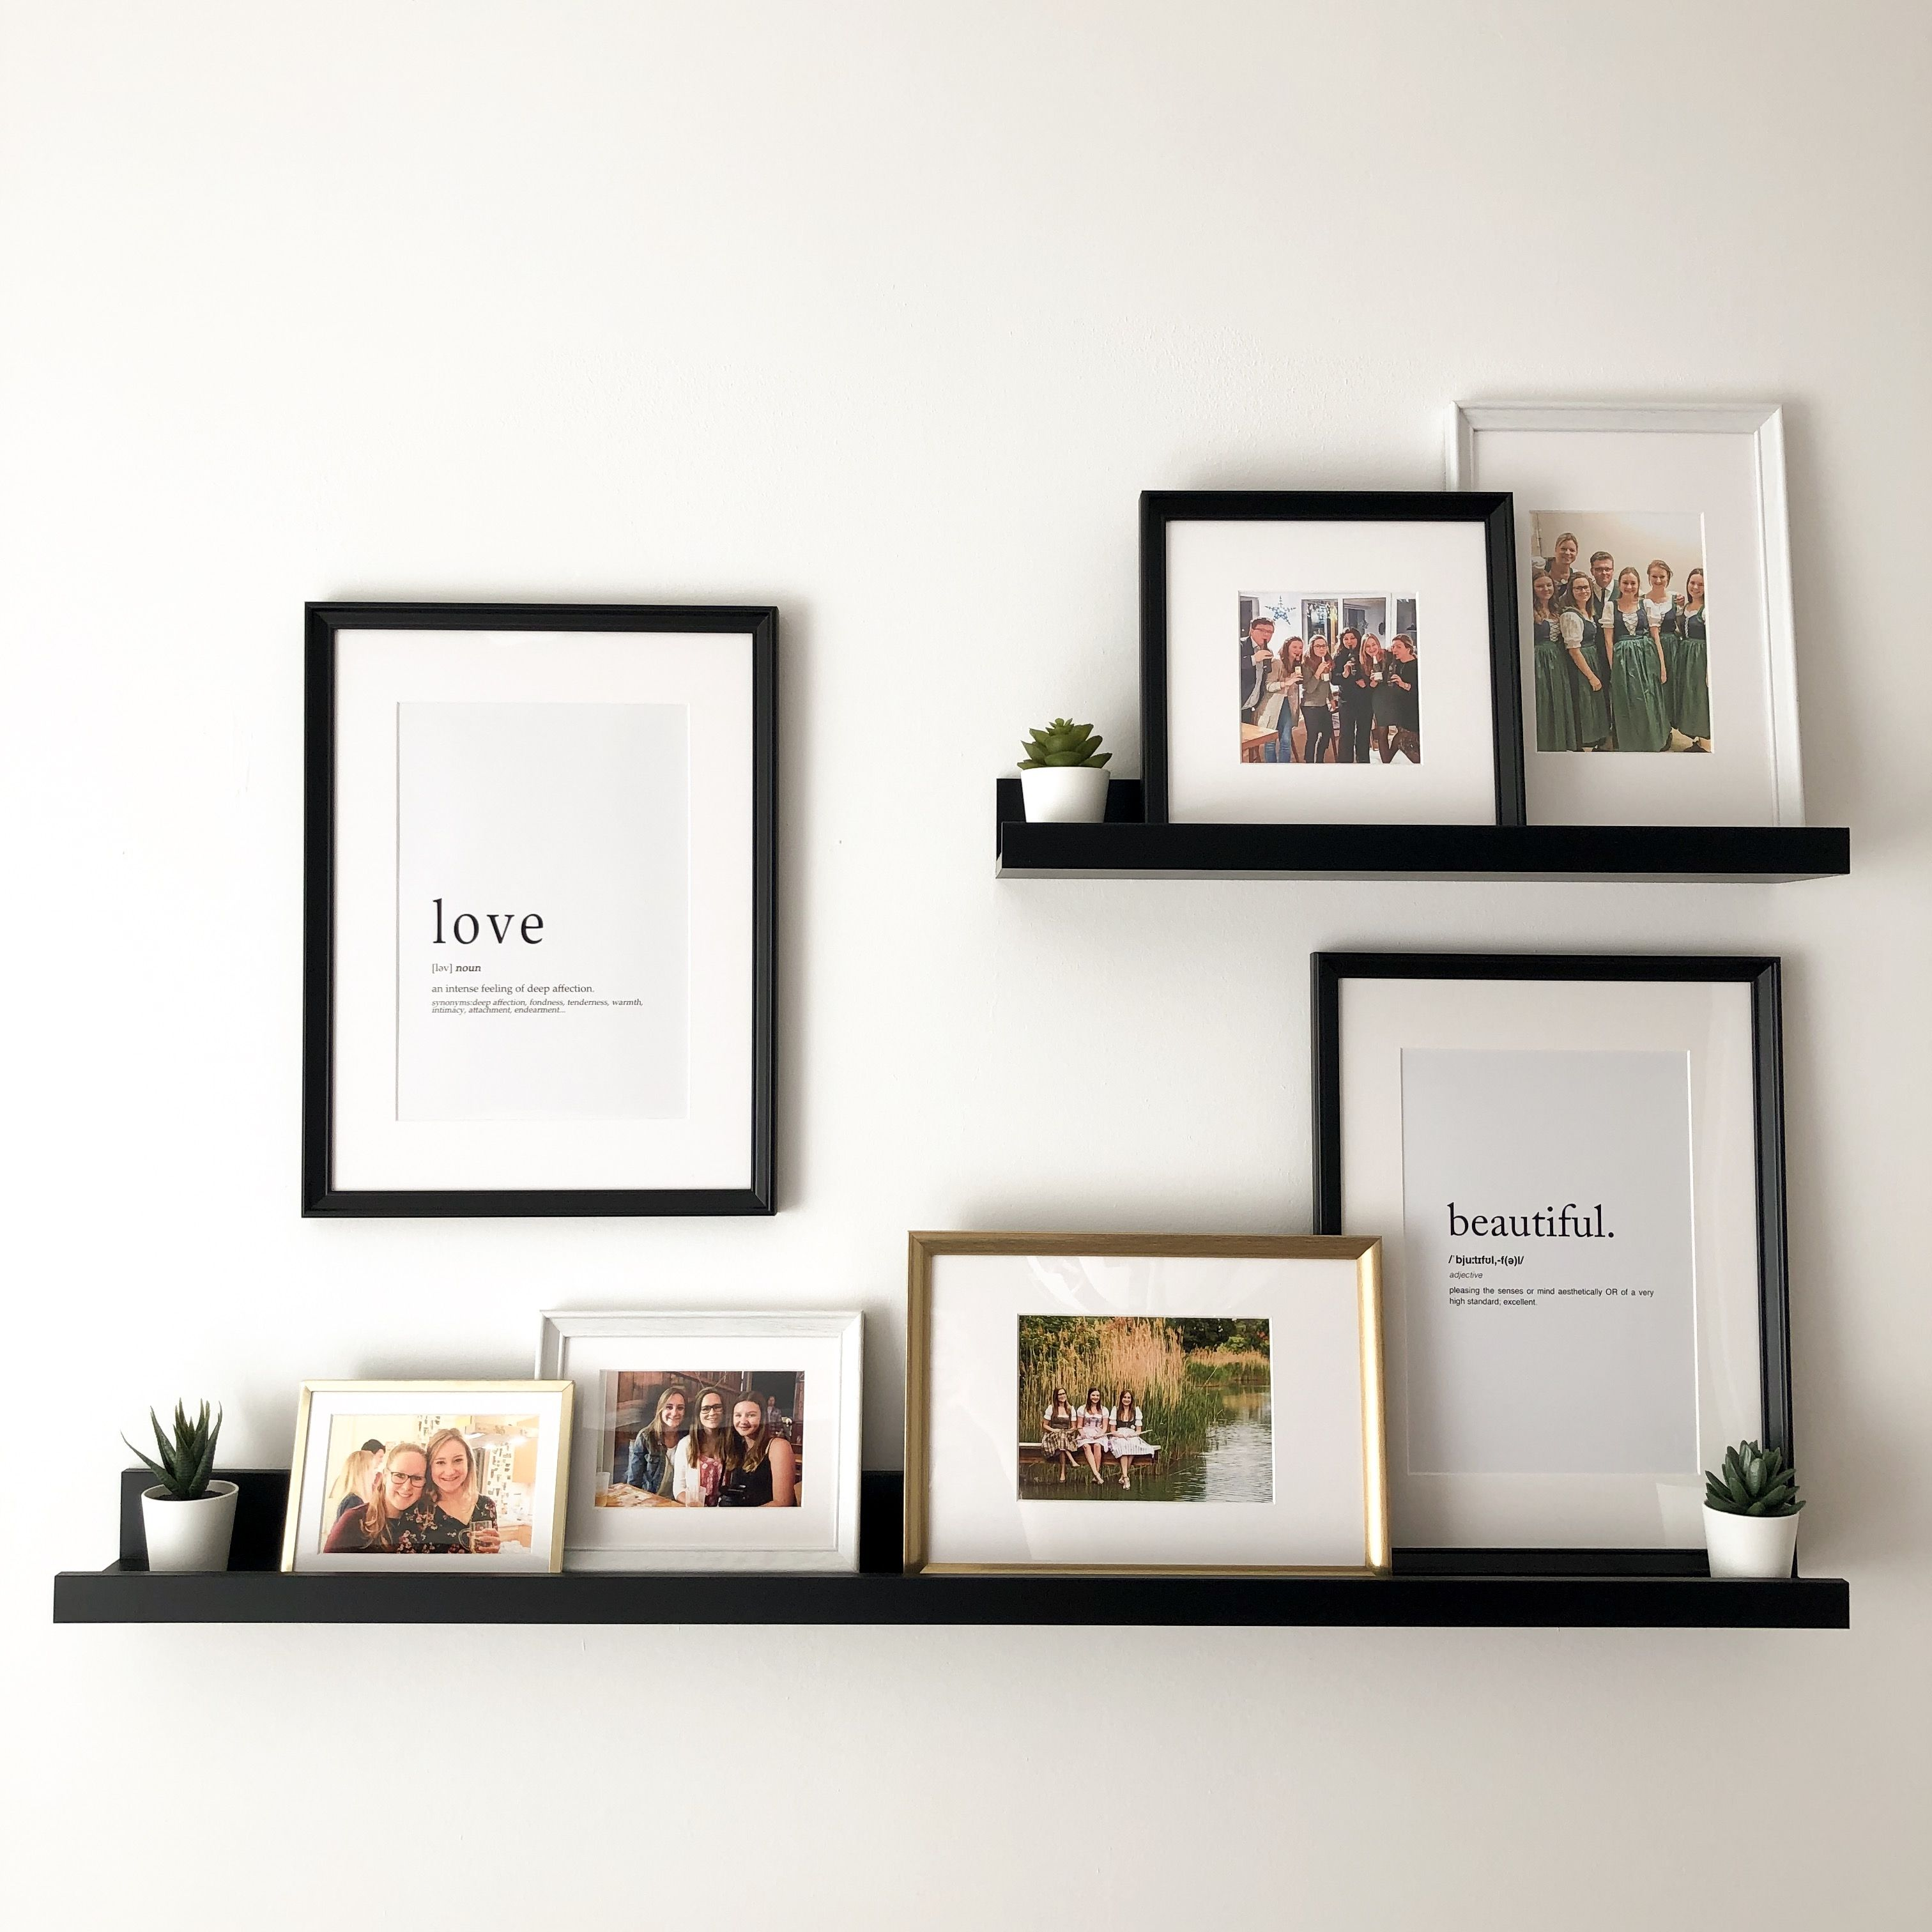 Ikea Picture Ledge Homedecor Homestyle Pics Frames Framedwallart Blackandwhiteandgold Simpledecor Home Decor Wall Decor Living Room Ikea Picture Ledge